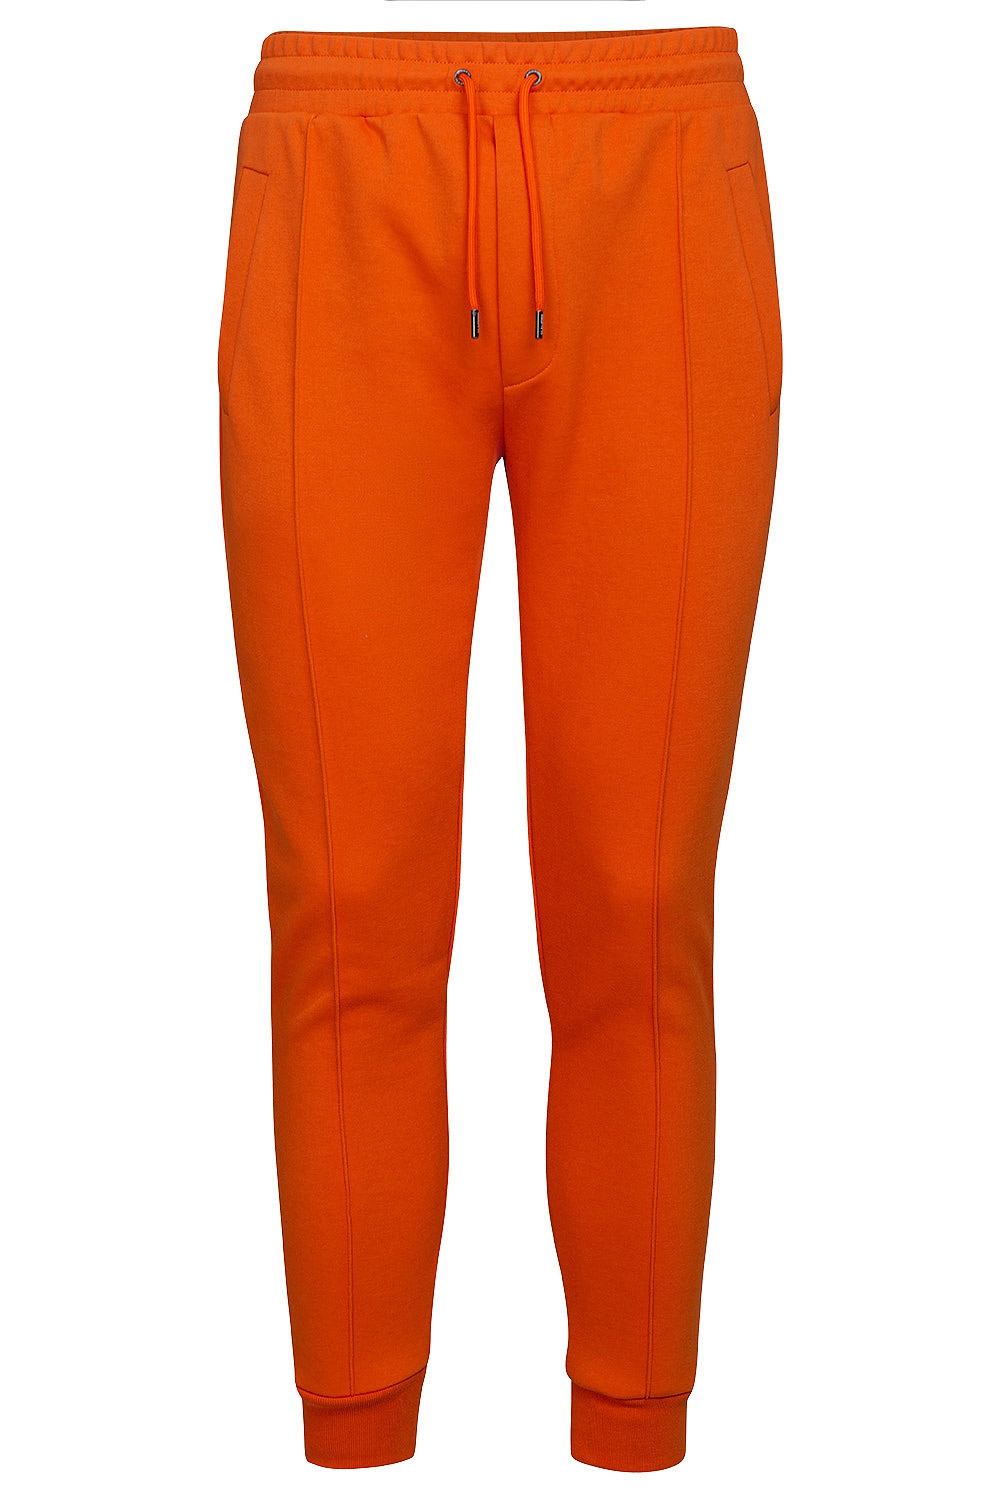 Slim body Orange Plain Trouser 0